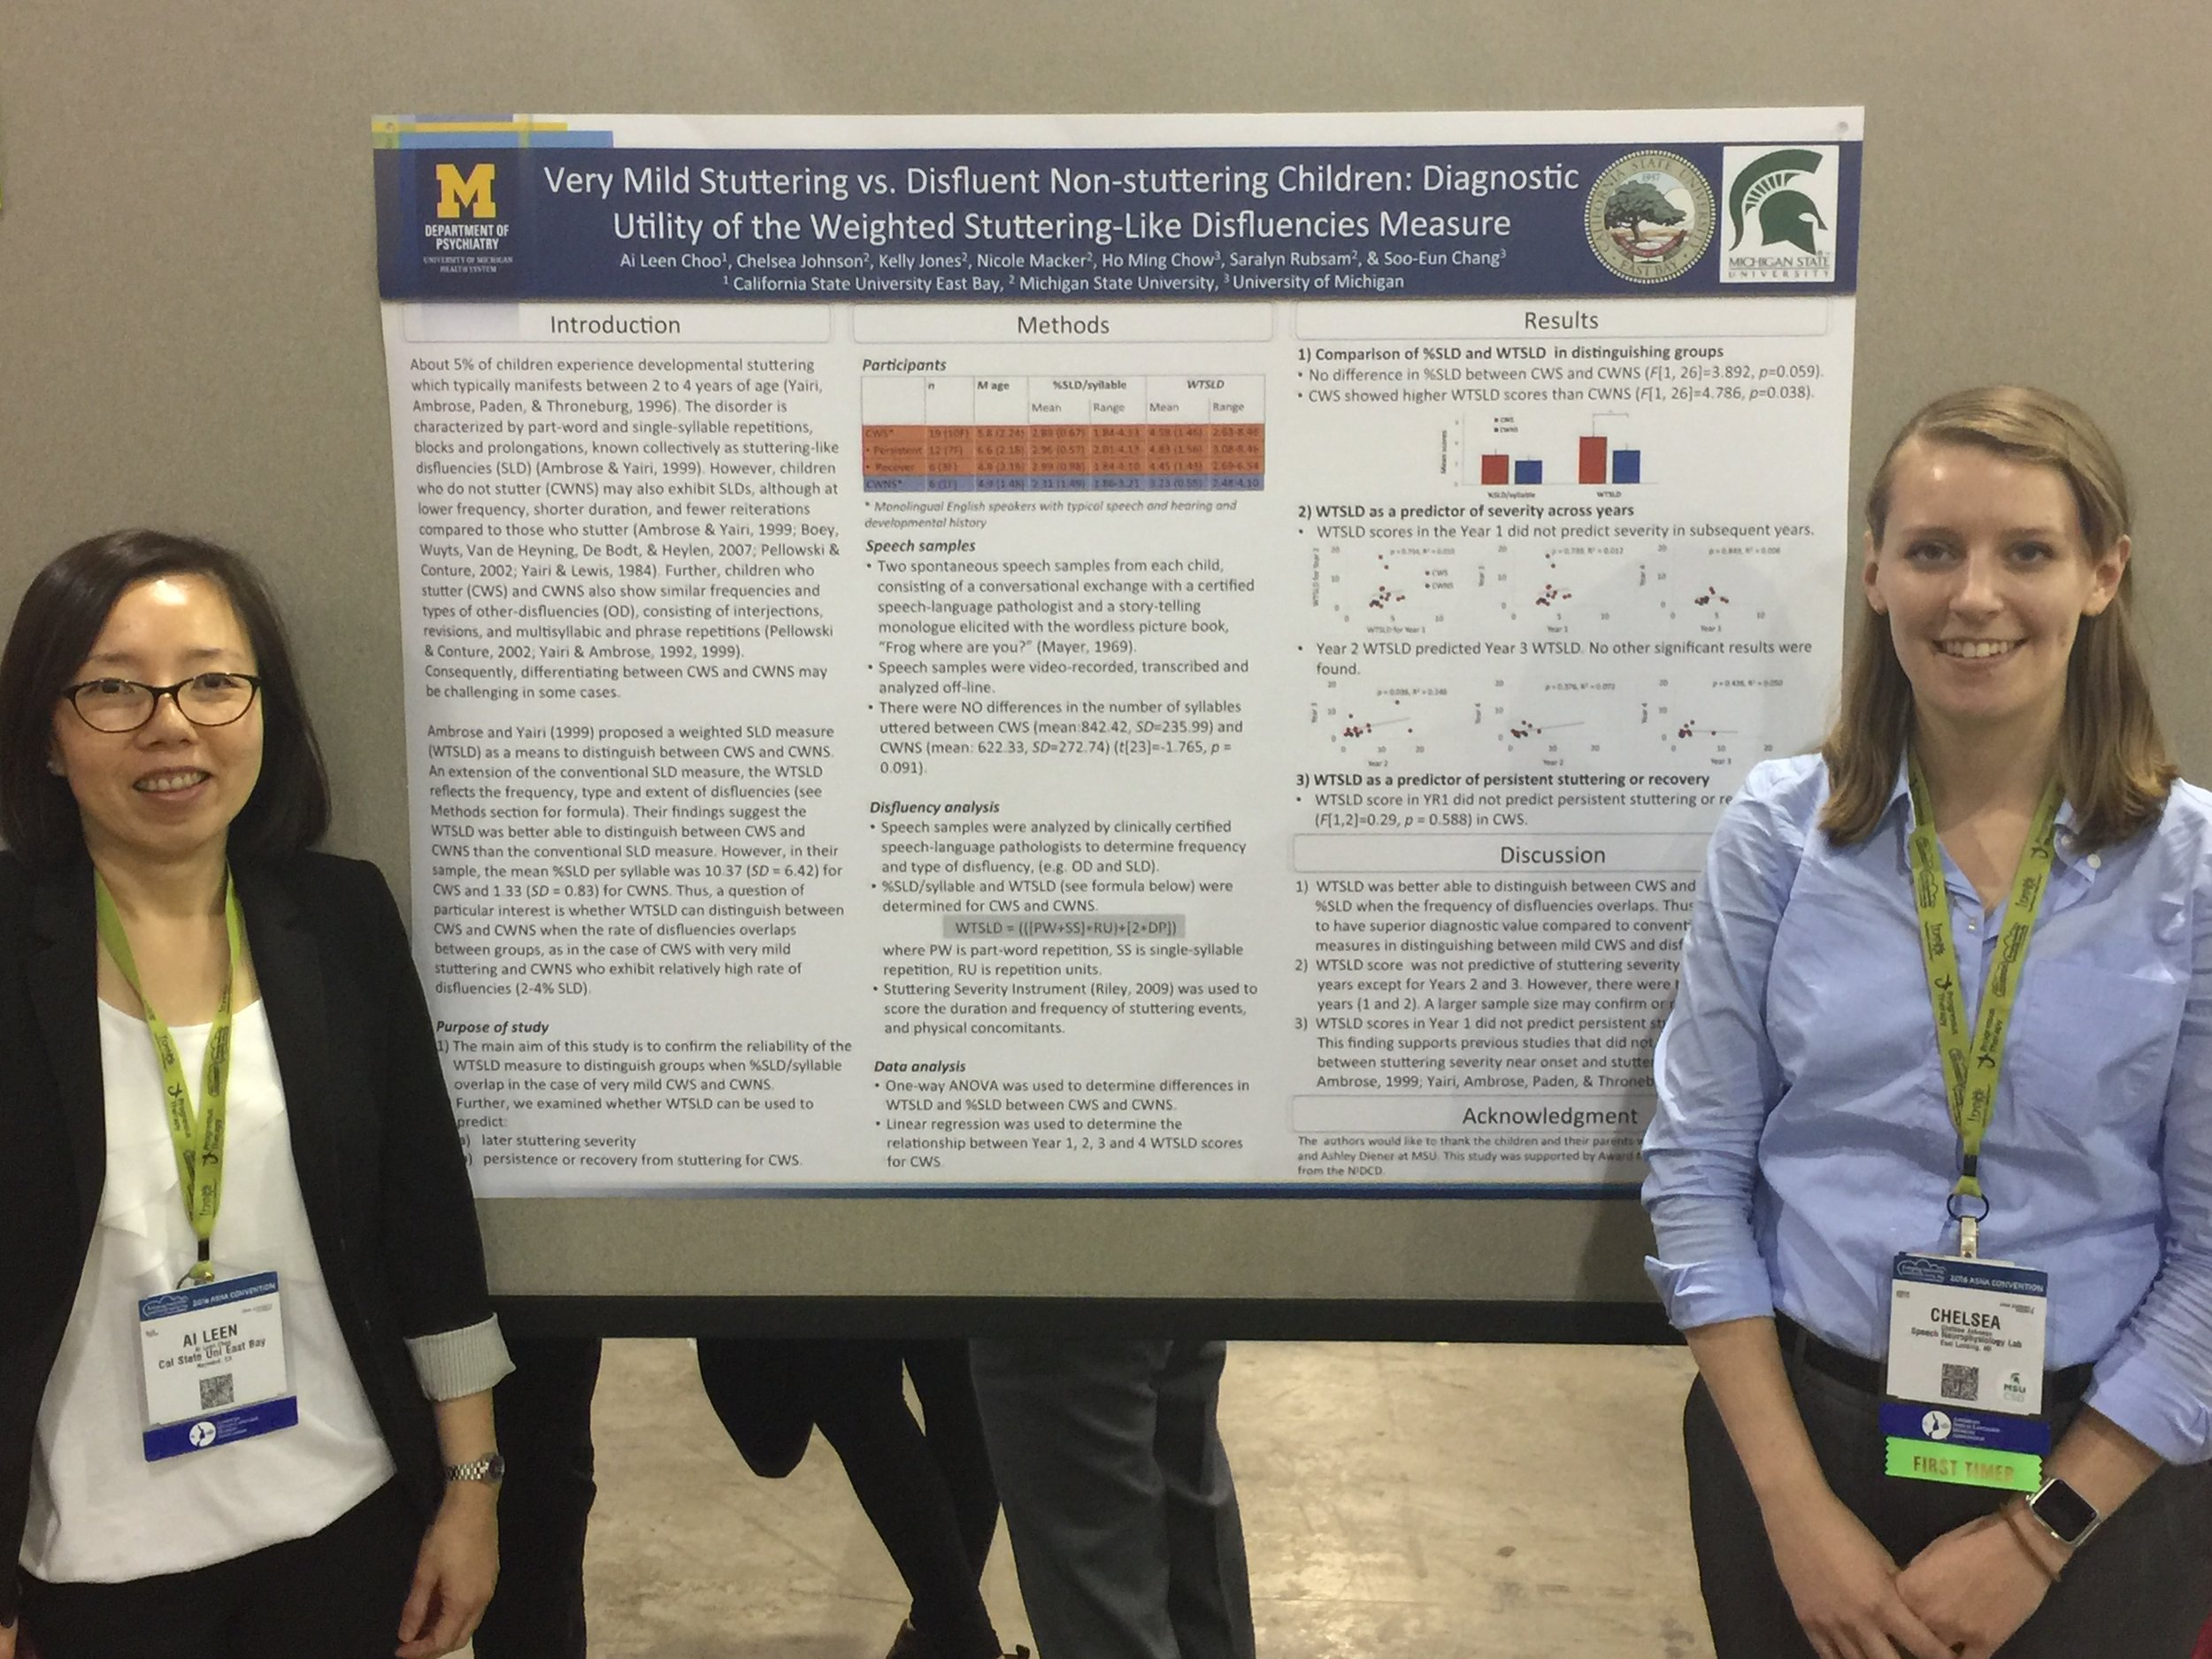 Ai Leen Choo (together with Chelsea Johnson) presenting a poster at ASHA 2016